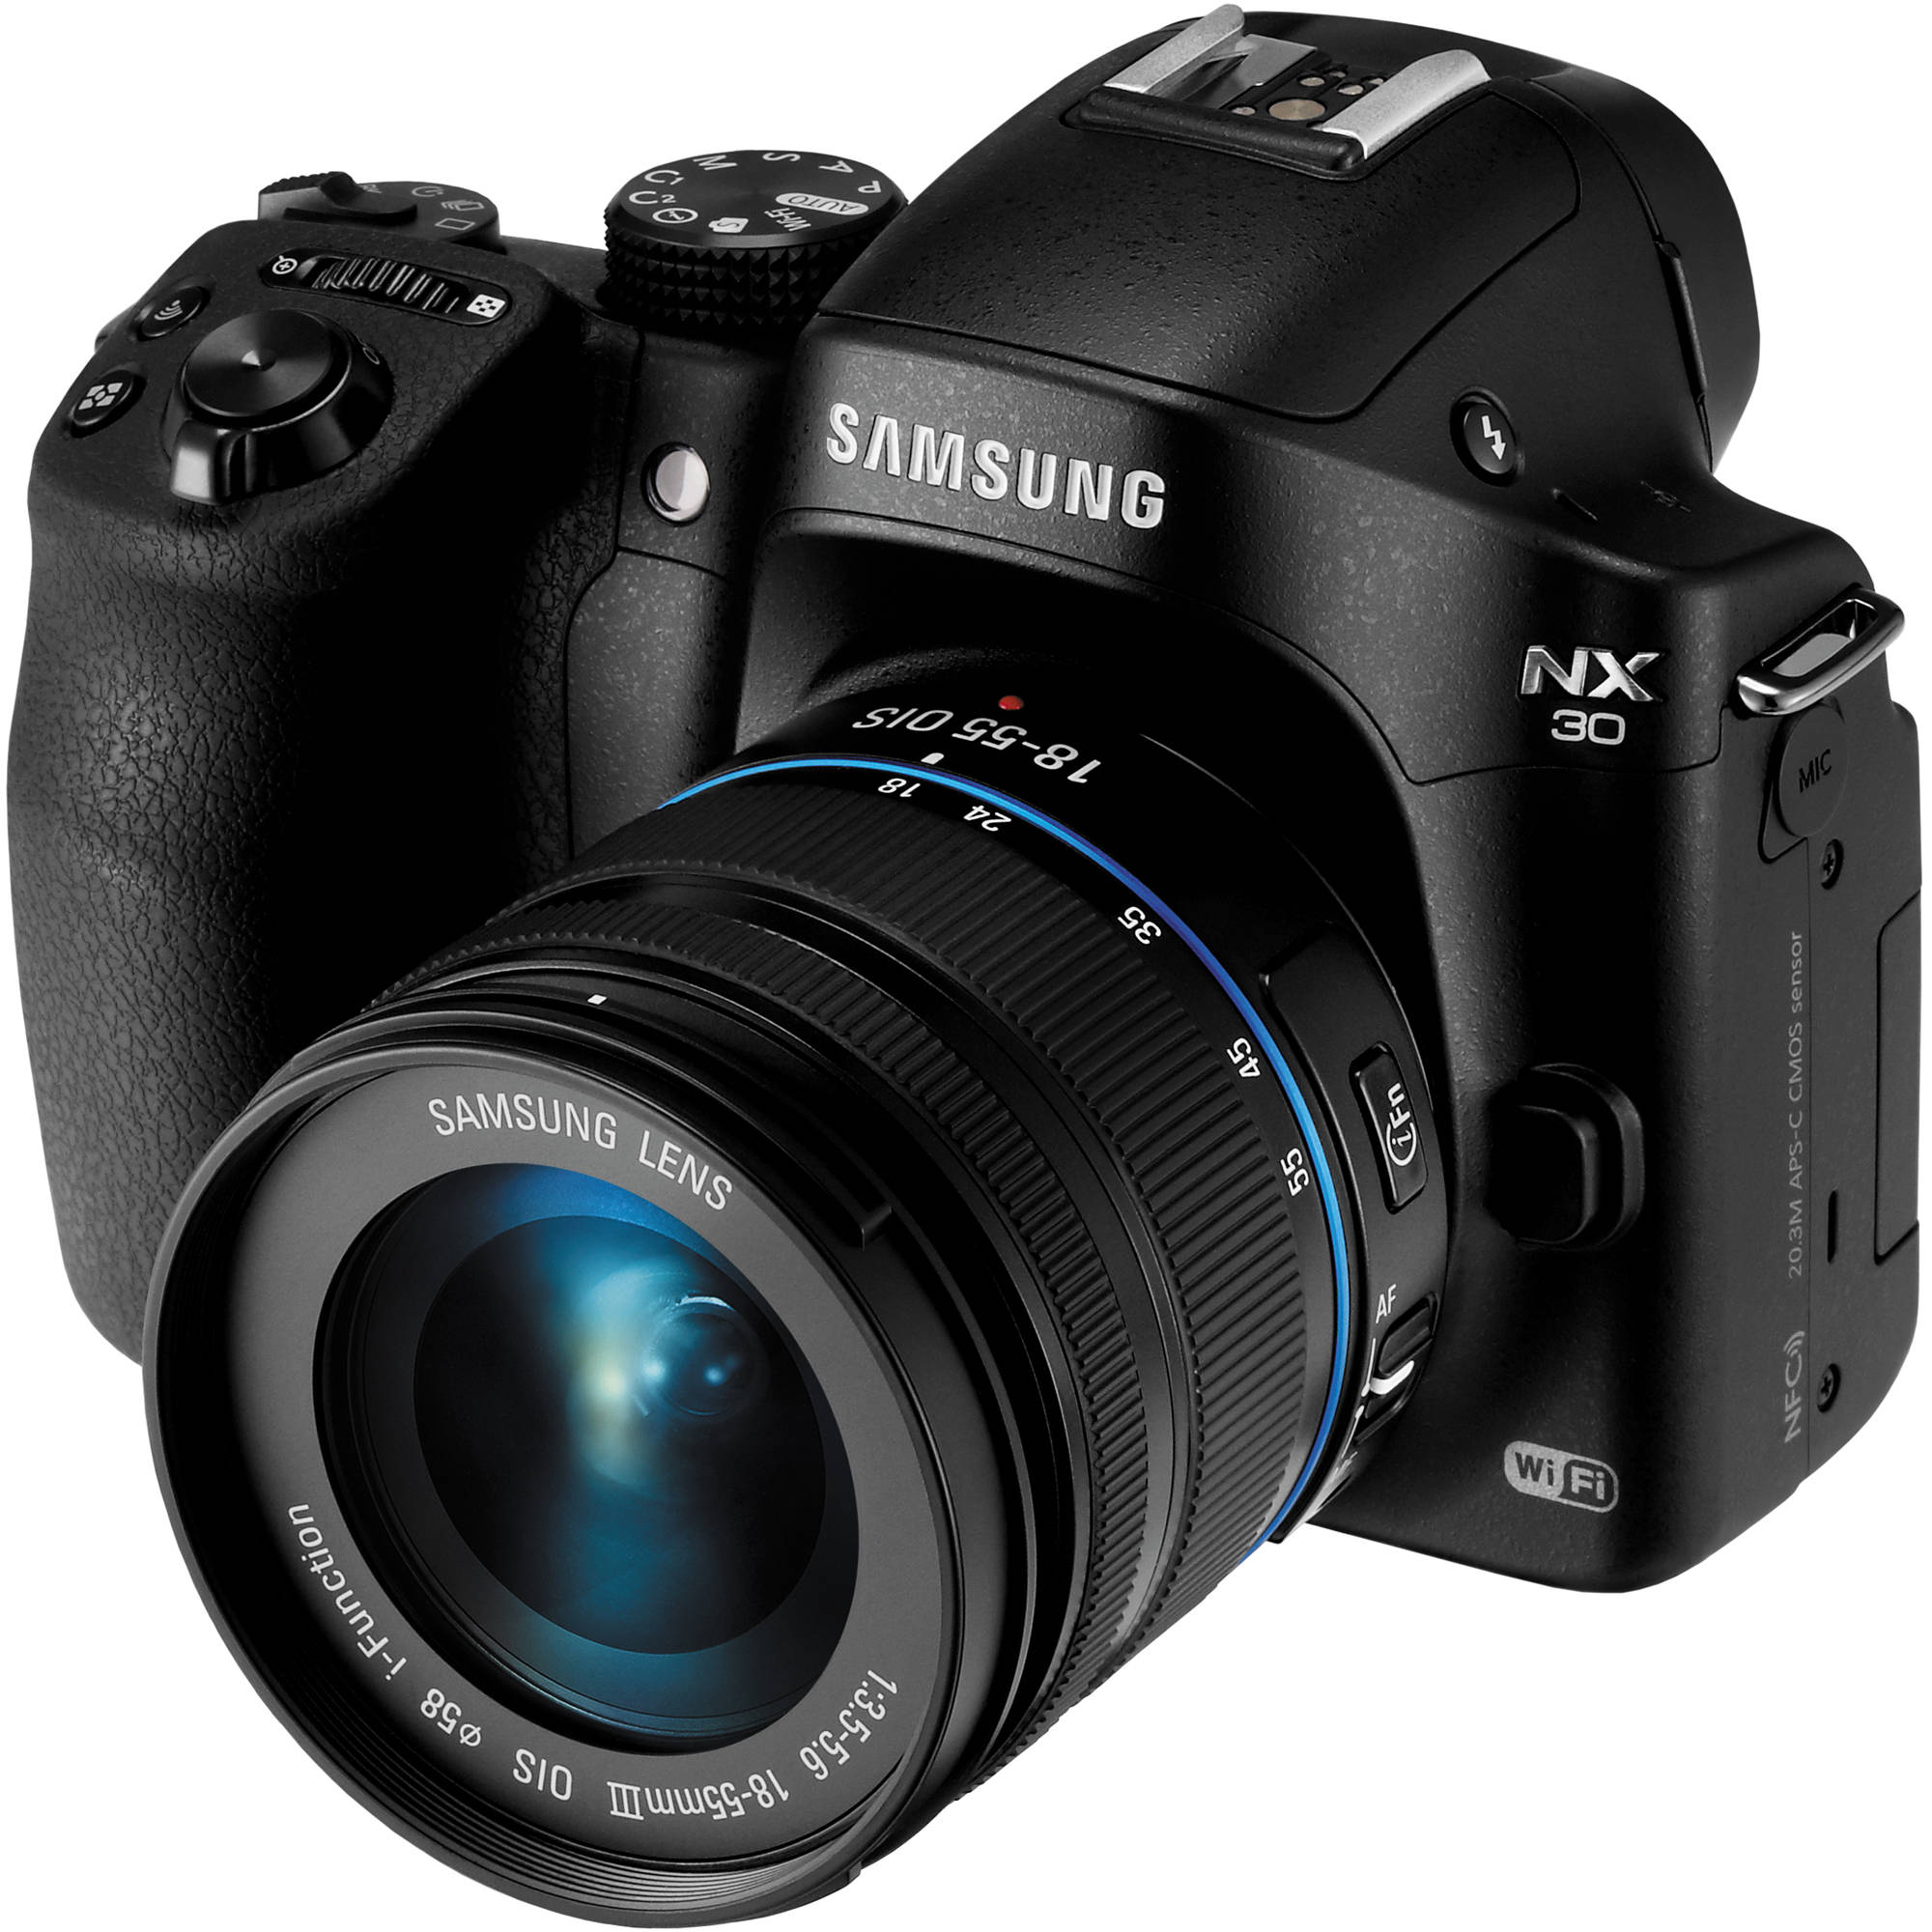 Unveiled: Samsung NX and Galaxy Digital Cameras | B&H Explora